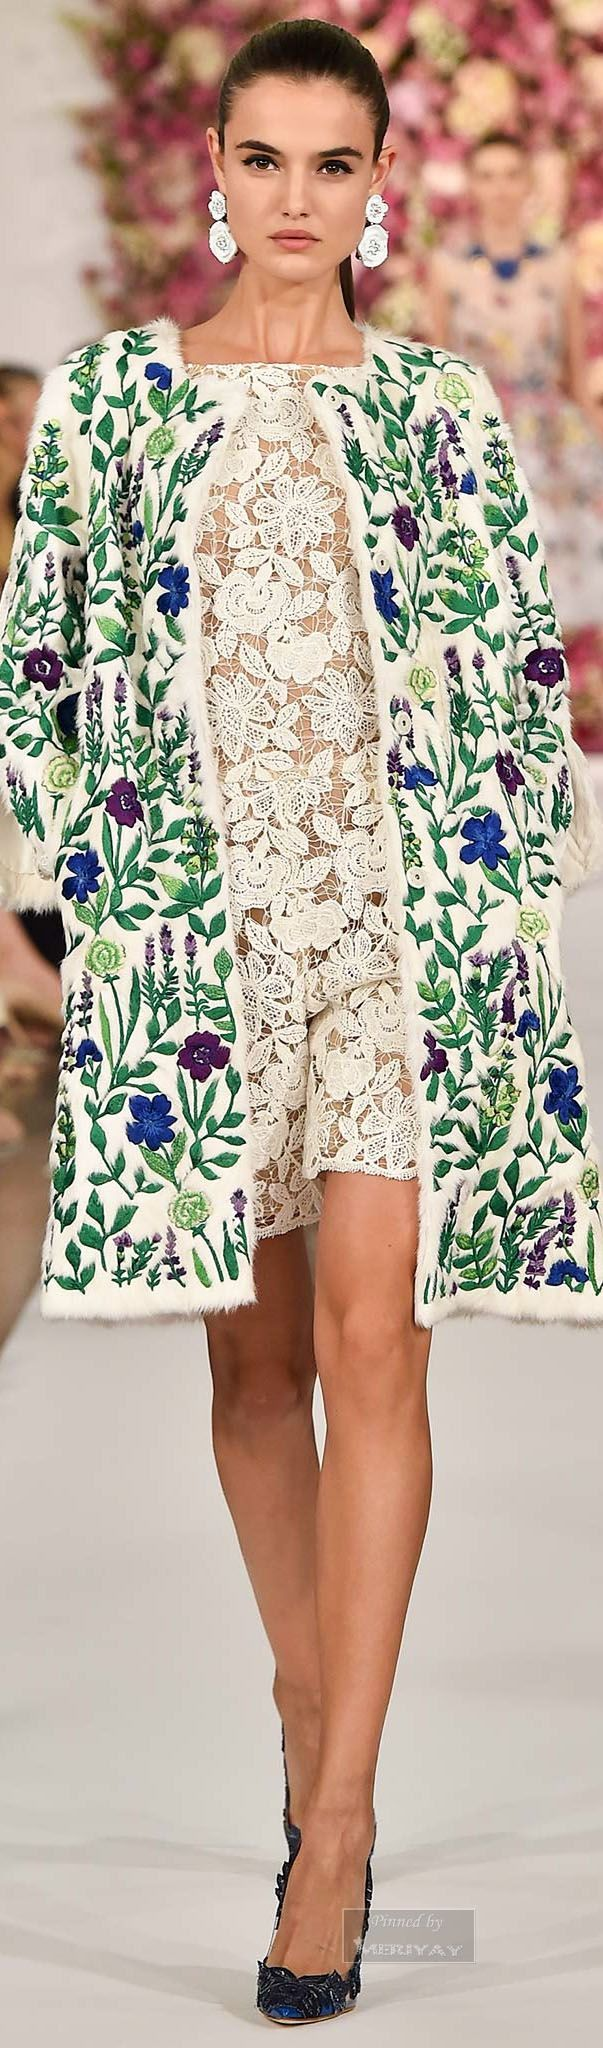 Oscar de la Renta Spring 2015. Floral jacket and dress. Floral earrings to match!